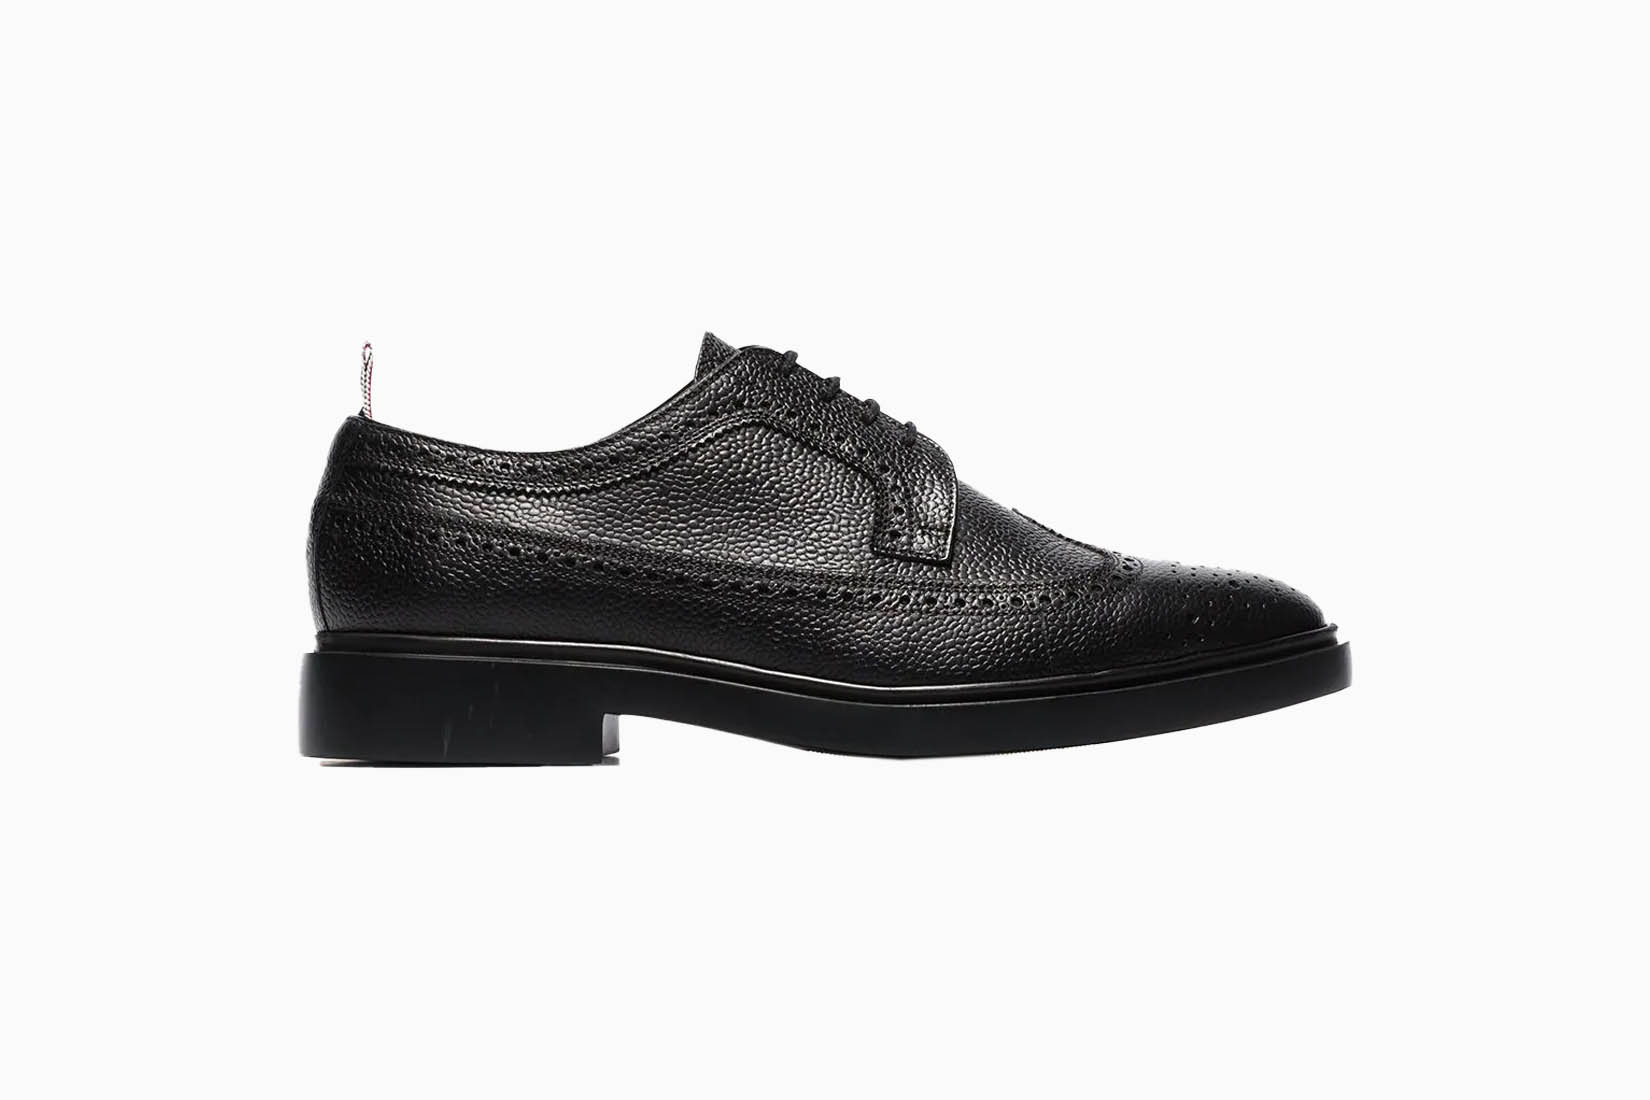 best casual shoes men thom browne brogues review Luxe Digital